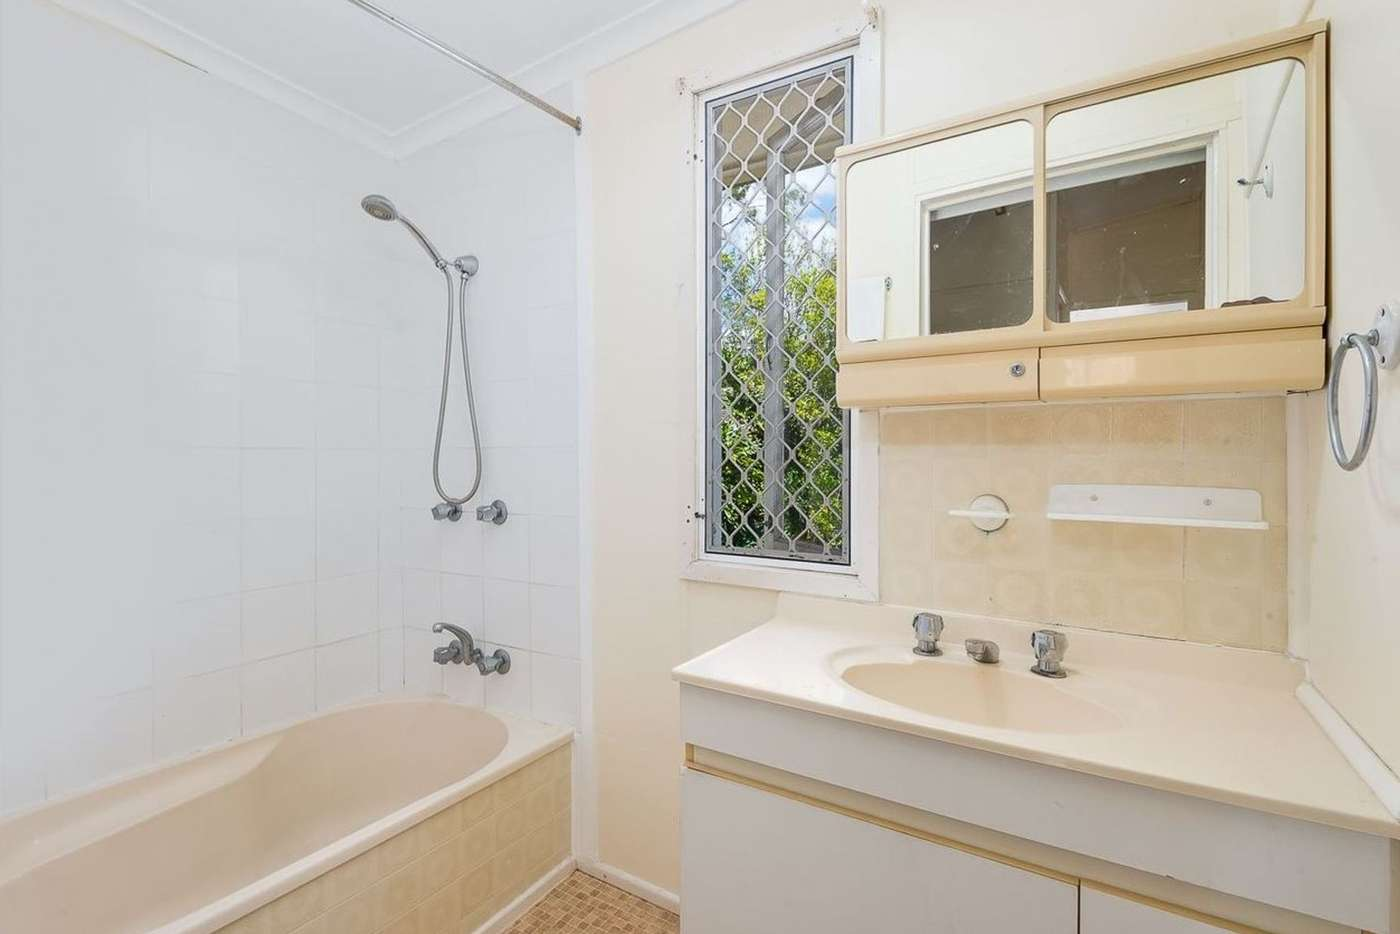 Sixth view of Homely house listing, 134 Douglas Street, Oxley QLD 4075